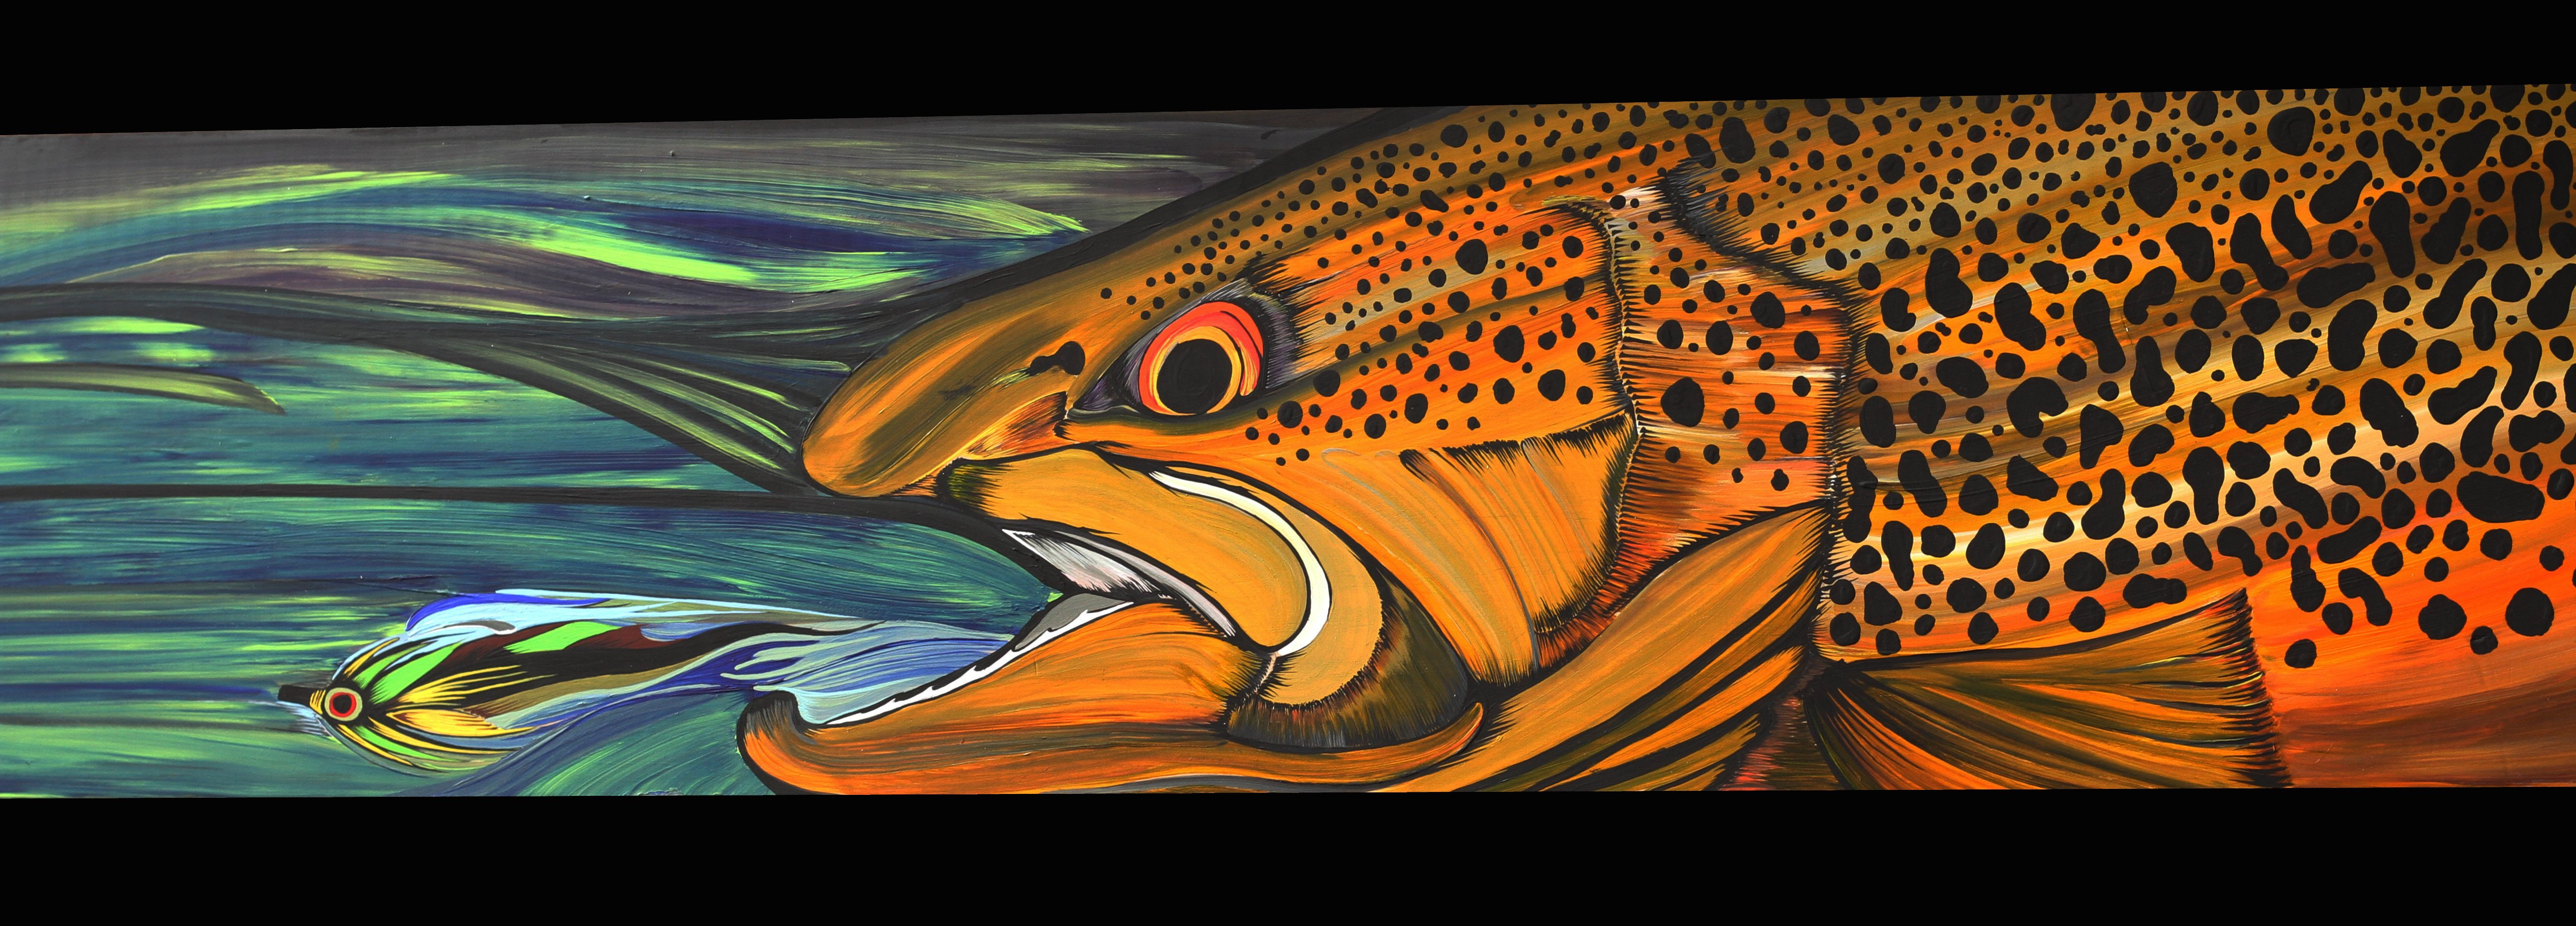 FISHING fish sport fishes bass trout artwork painting wallpaper | 5184x1864 | 324650 | WallpaperUP